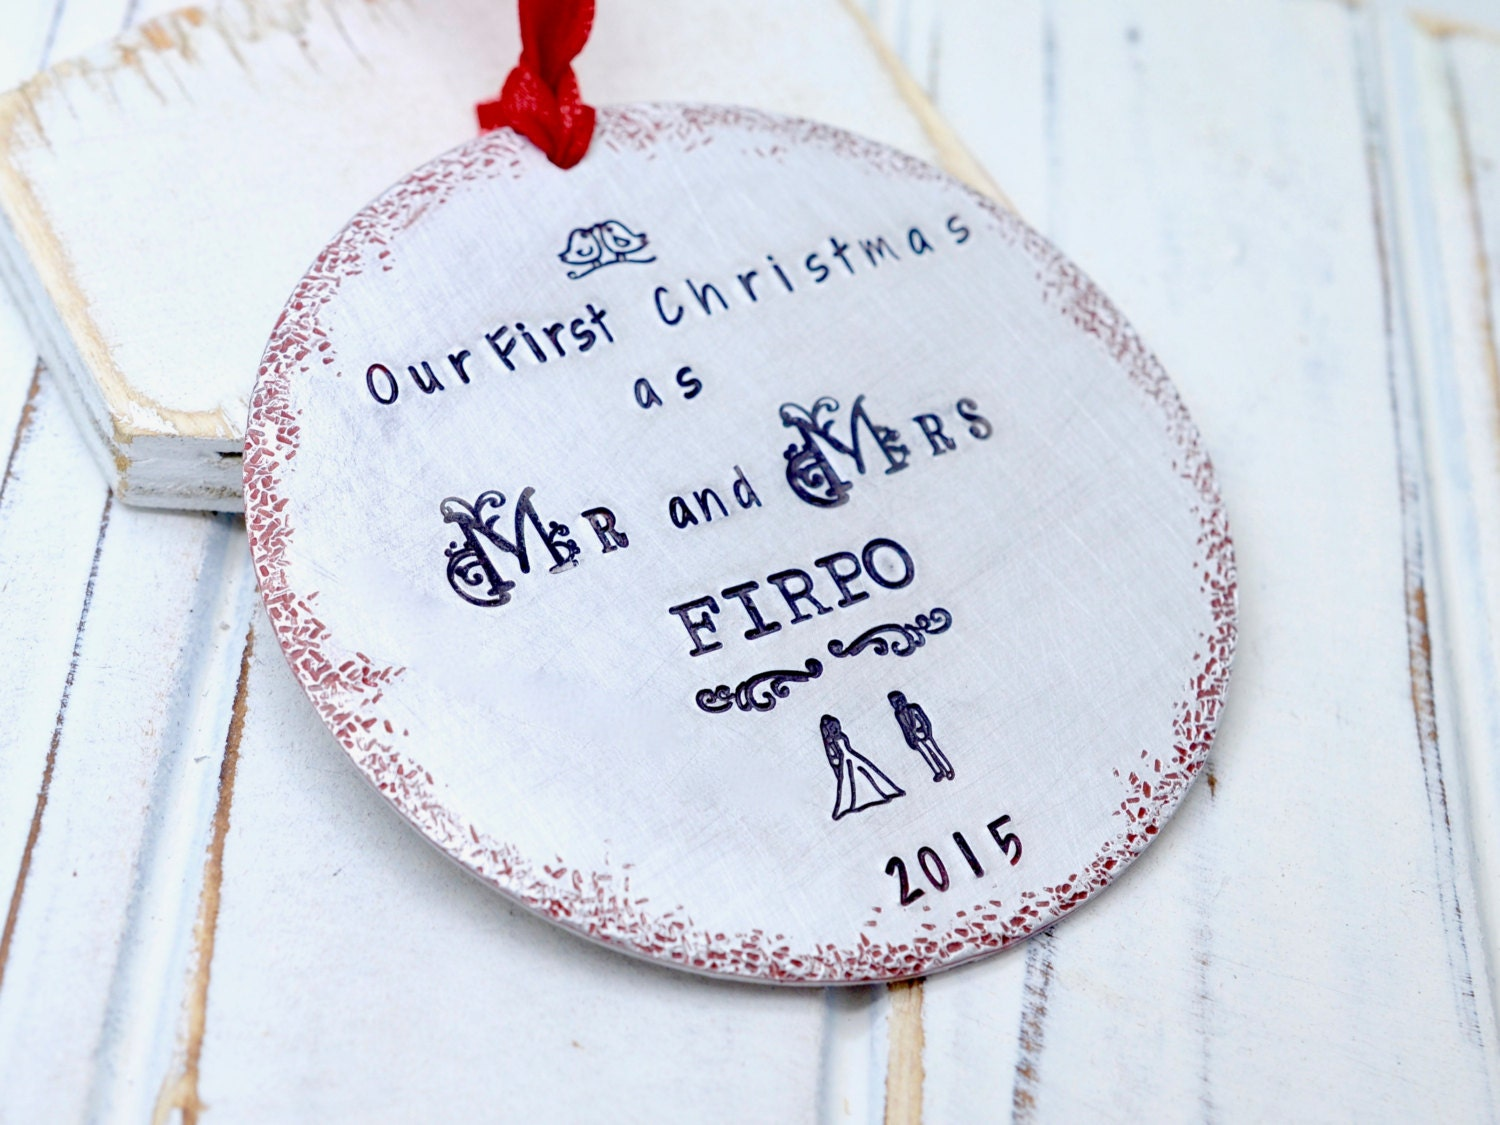 First christmas as a married couple ornament - Our First Christmas Ornament Our First Christmas As Mr And Mrs Wedding Ornament Mr Mrs Married Couple Ornament First Christmas Married